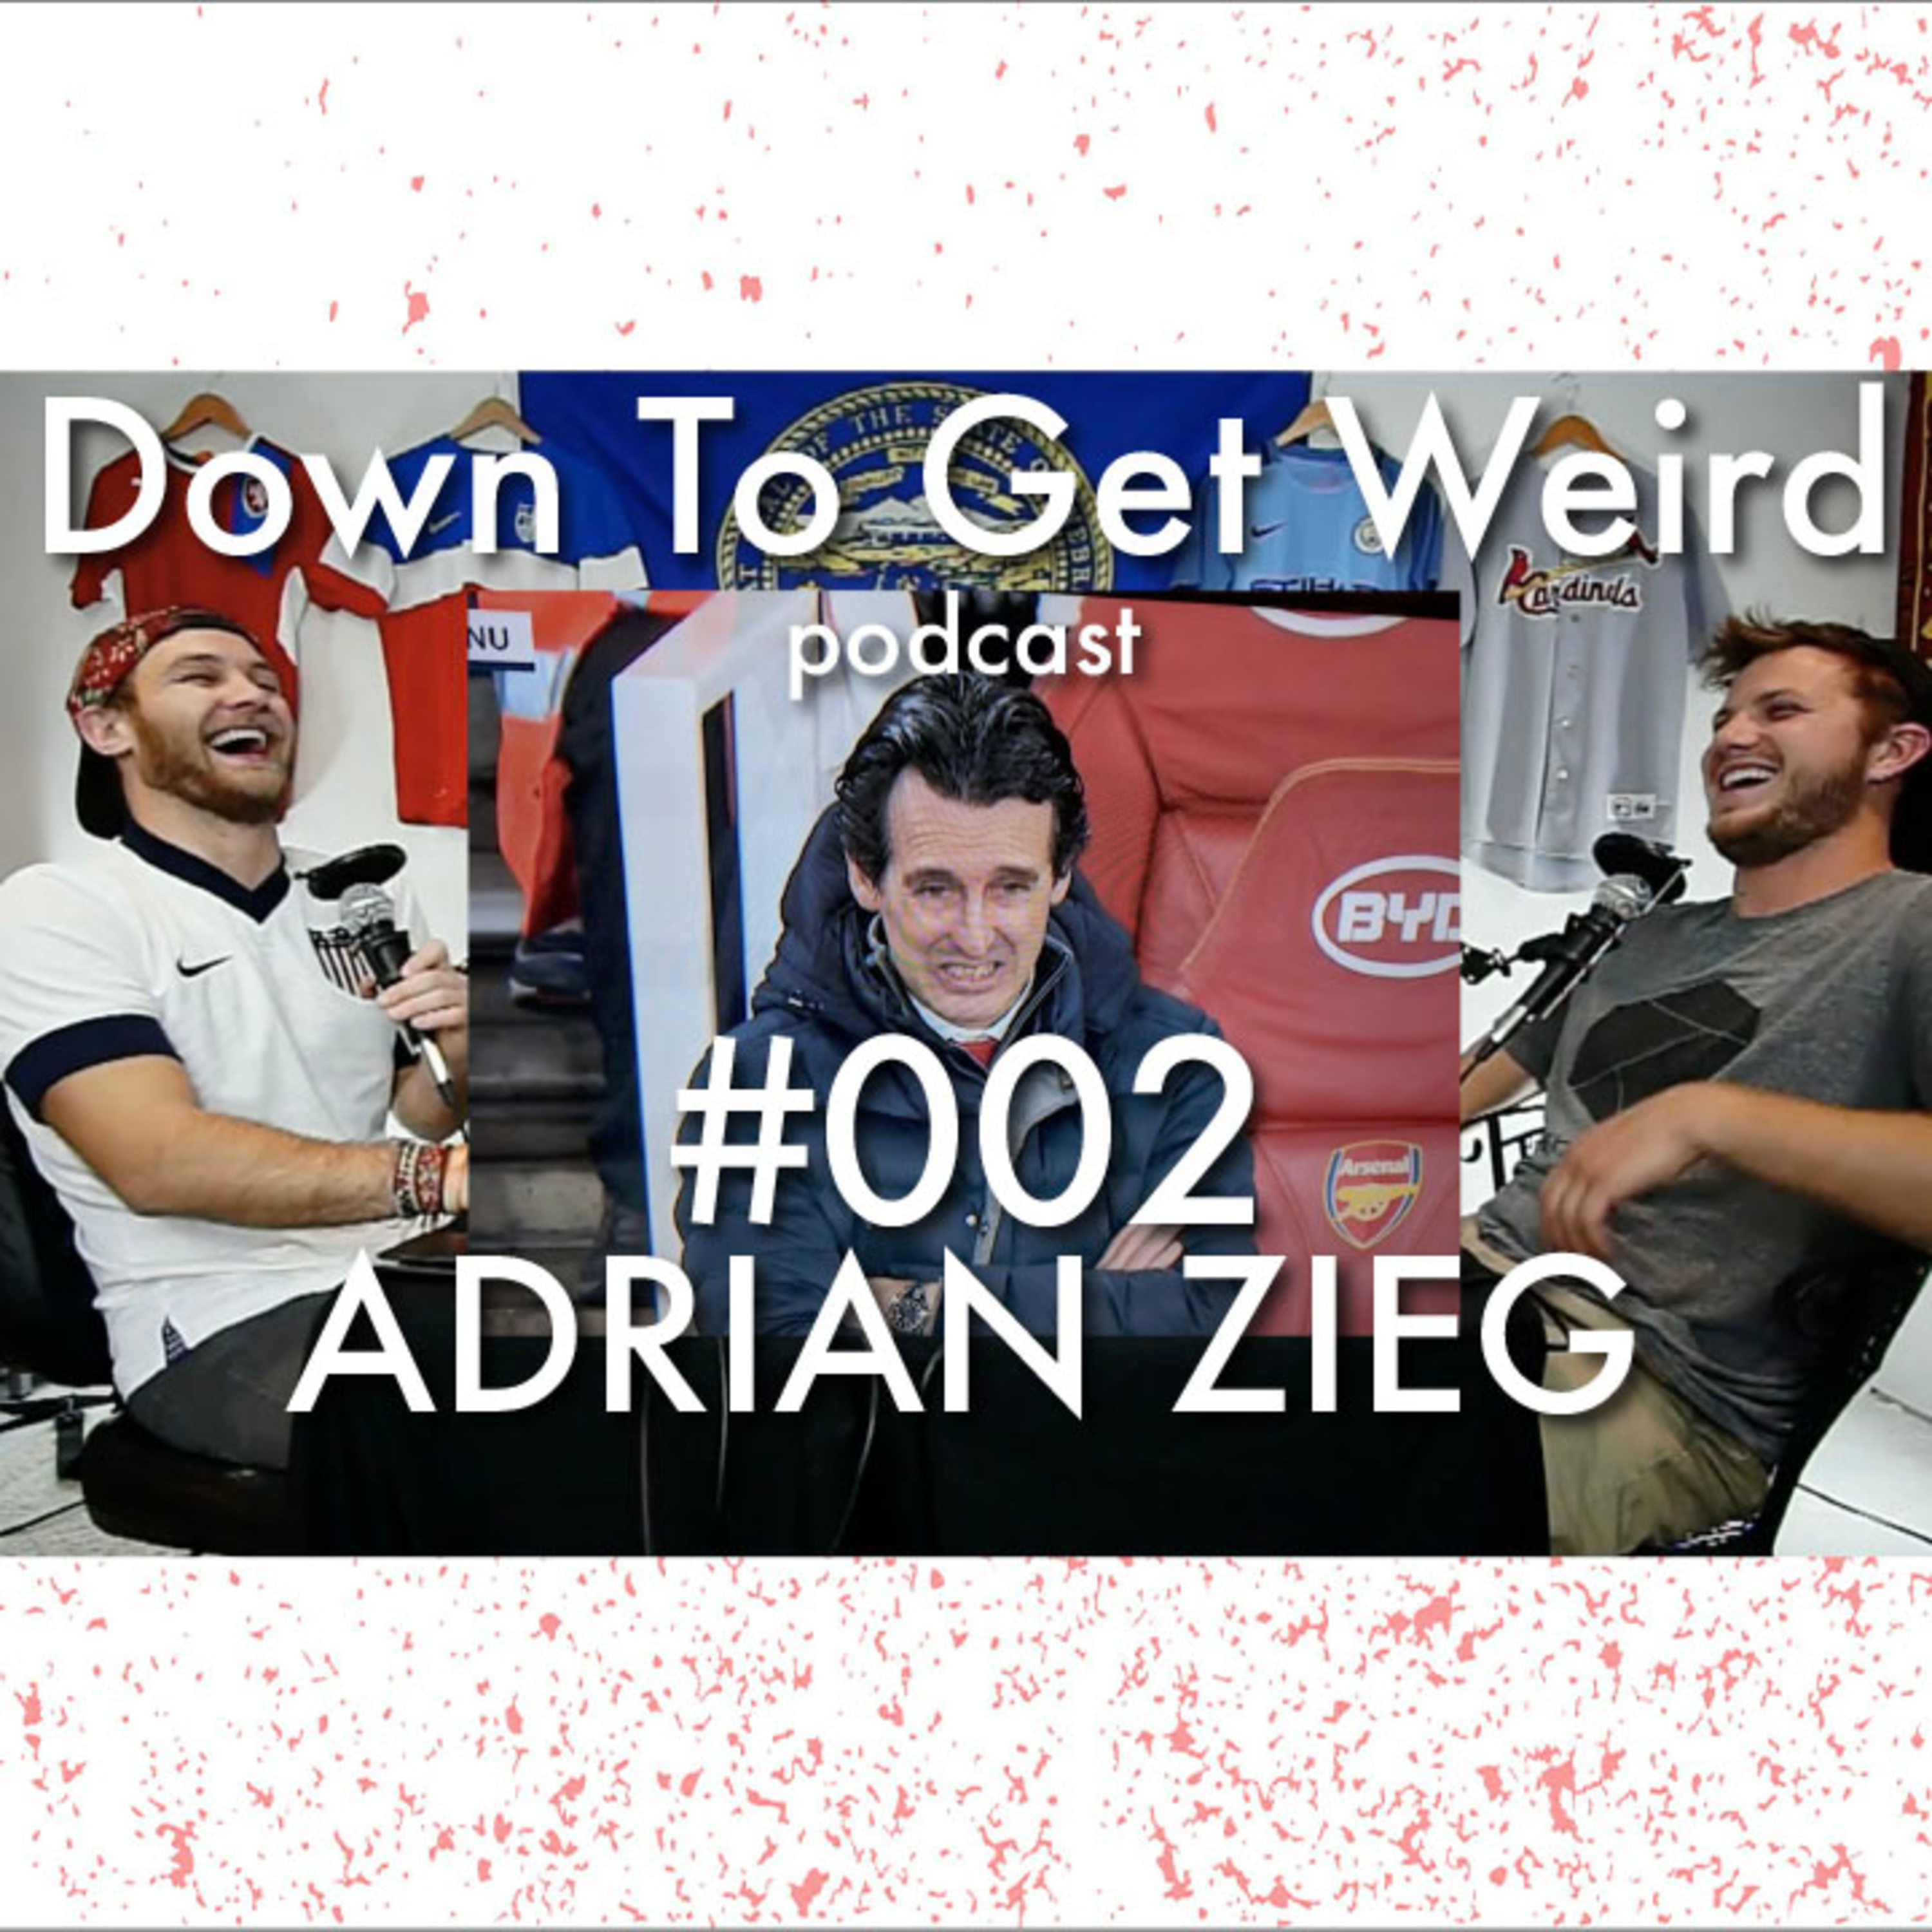 002 - Adrian Zieg - Why Americans Need To Care About Soccer